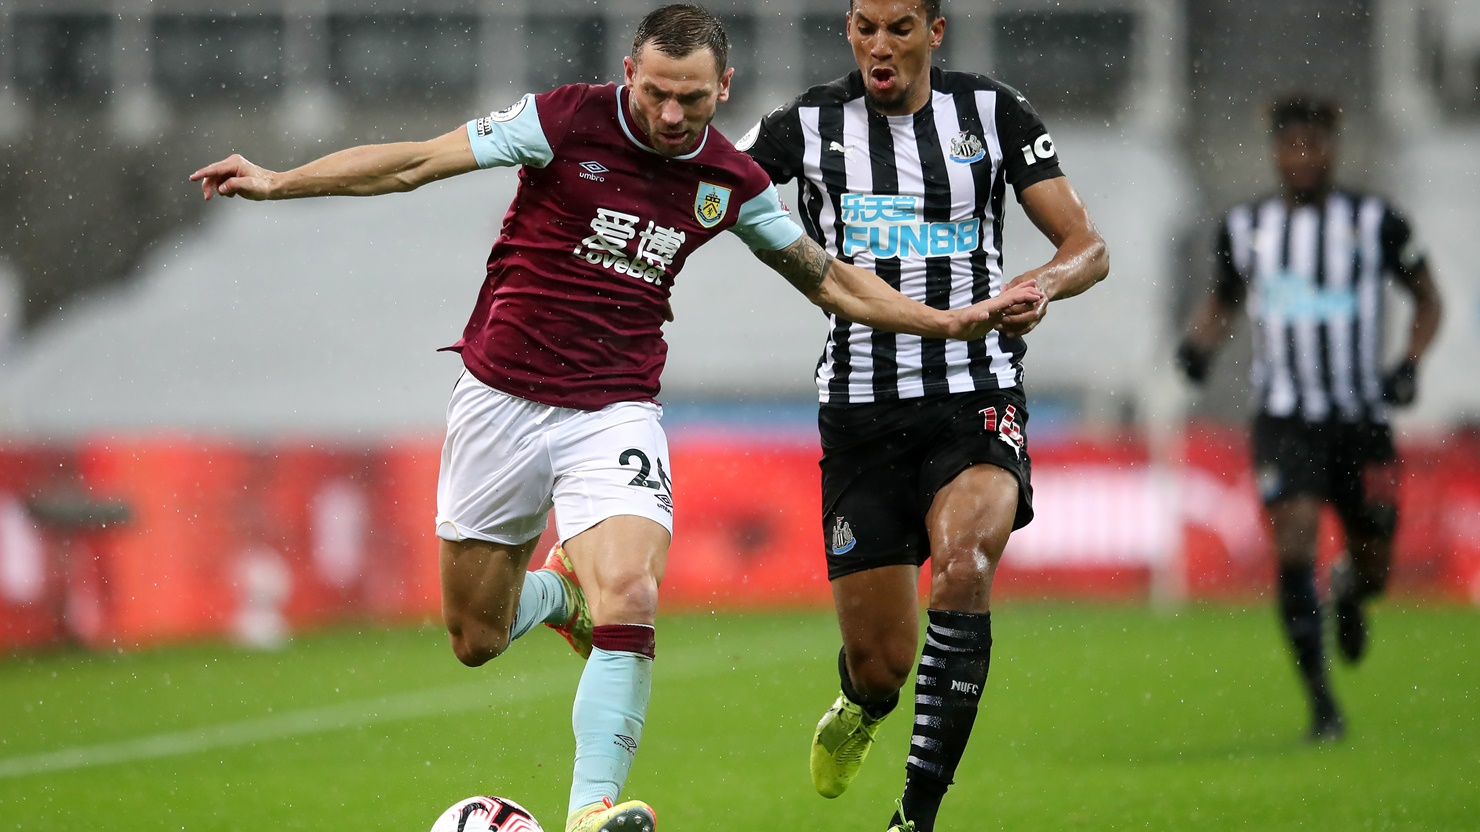 Bardsley Wants Another Chapter To Cup Story